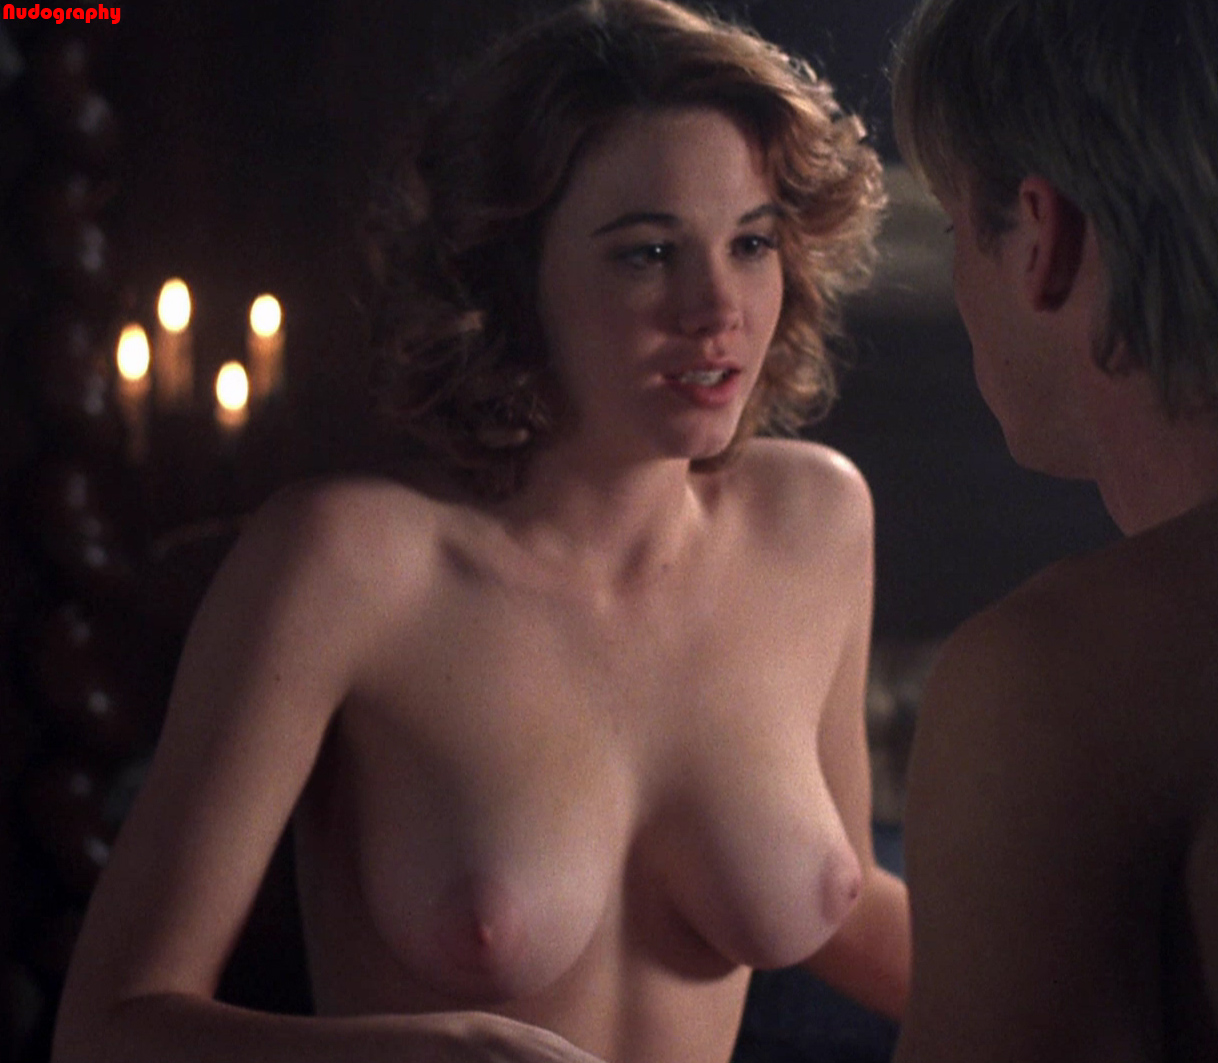 Allison Mack Nudography cristi conaway nude hot girls wallpaper gallery-2652 | my